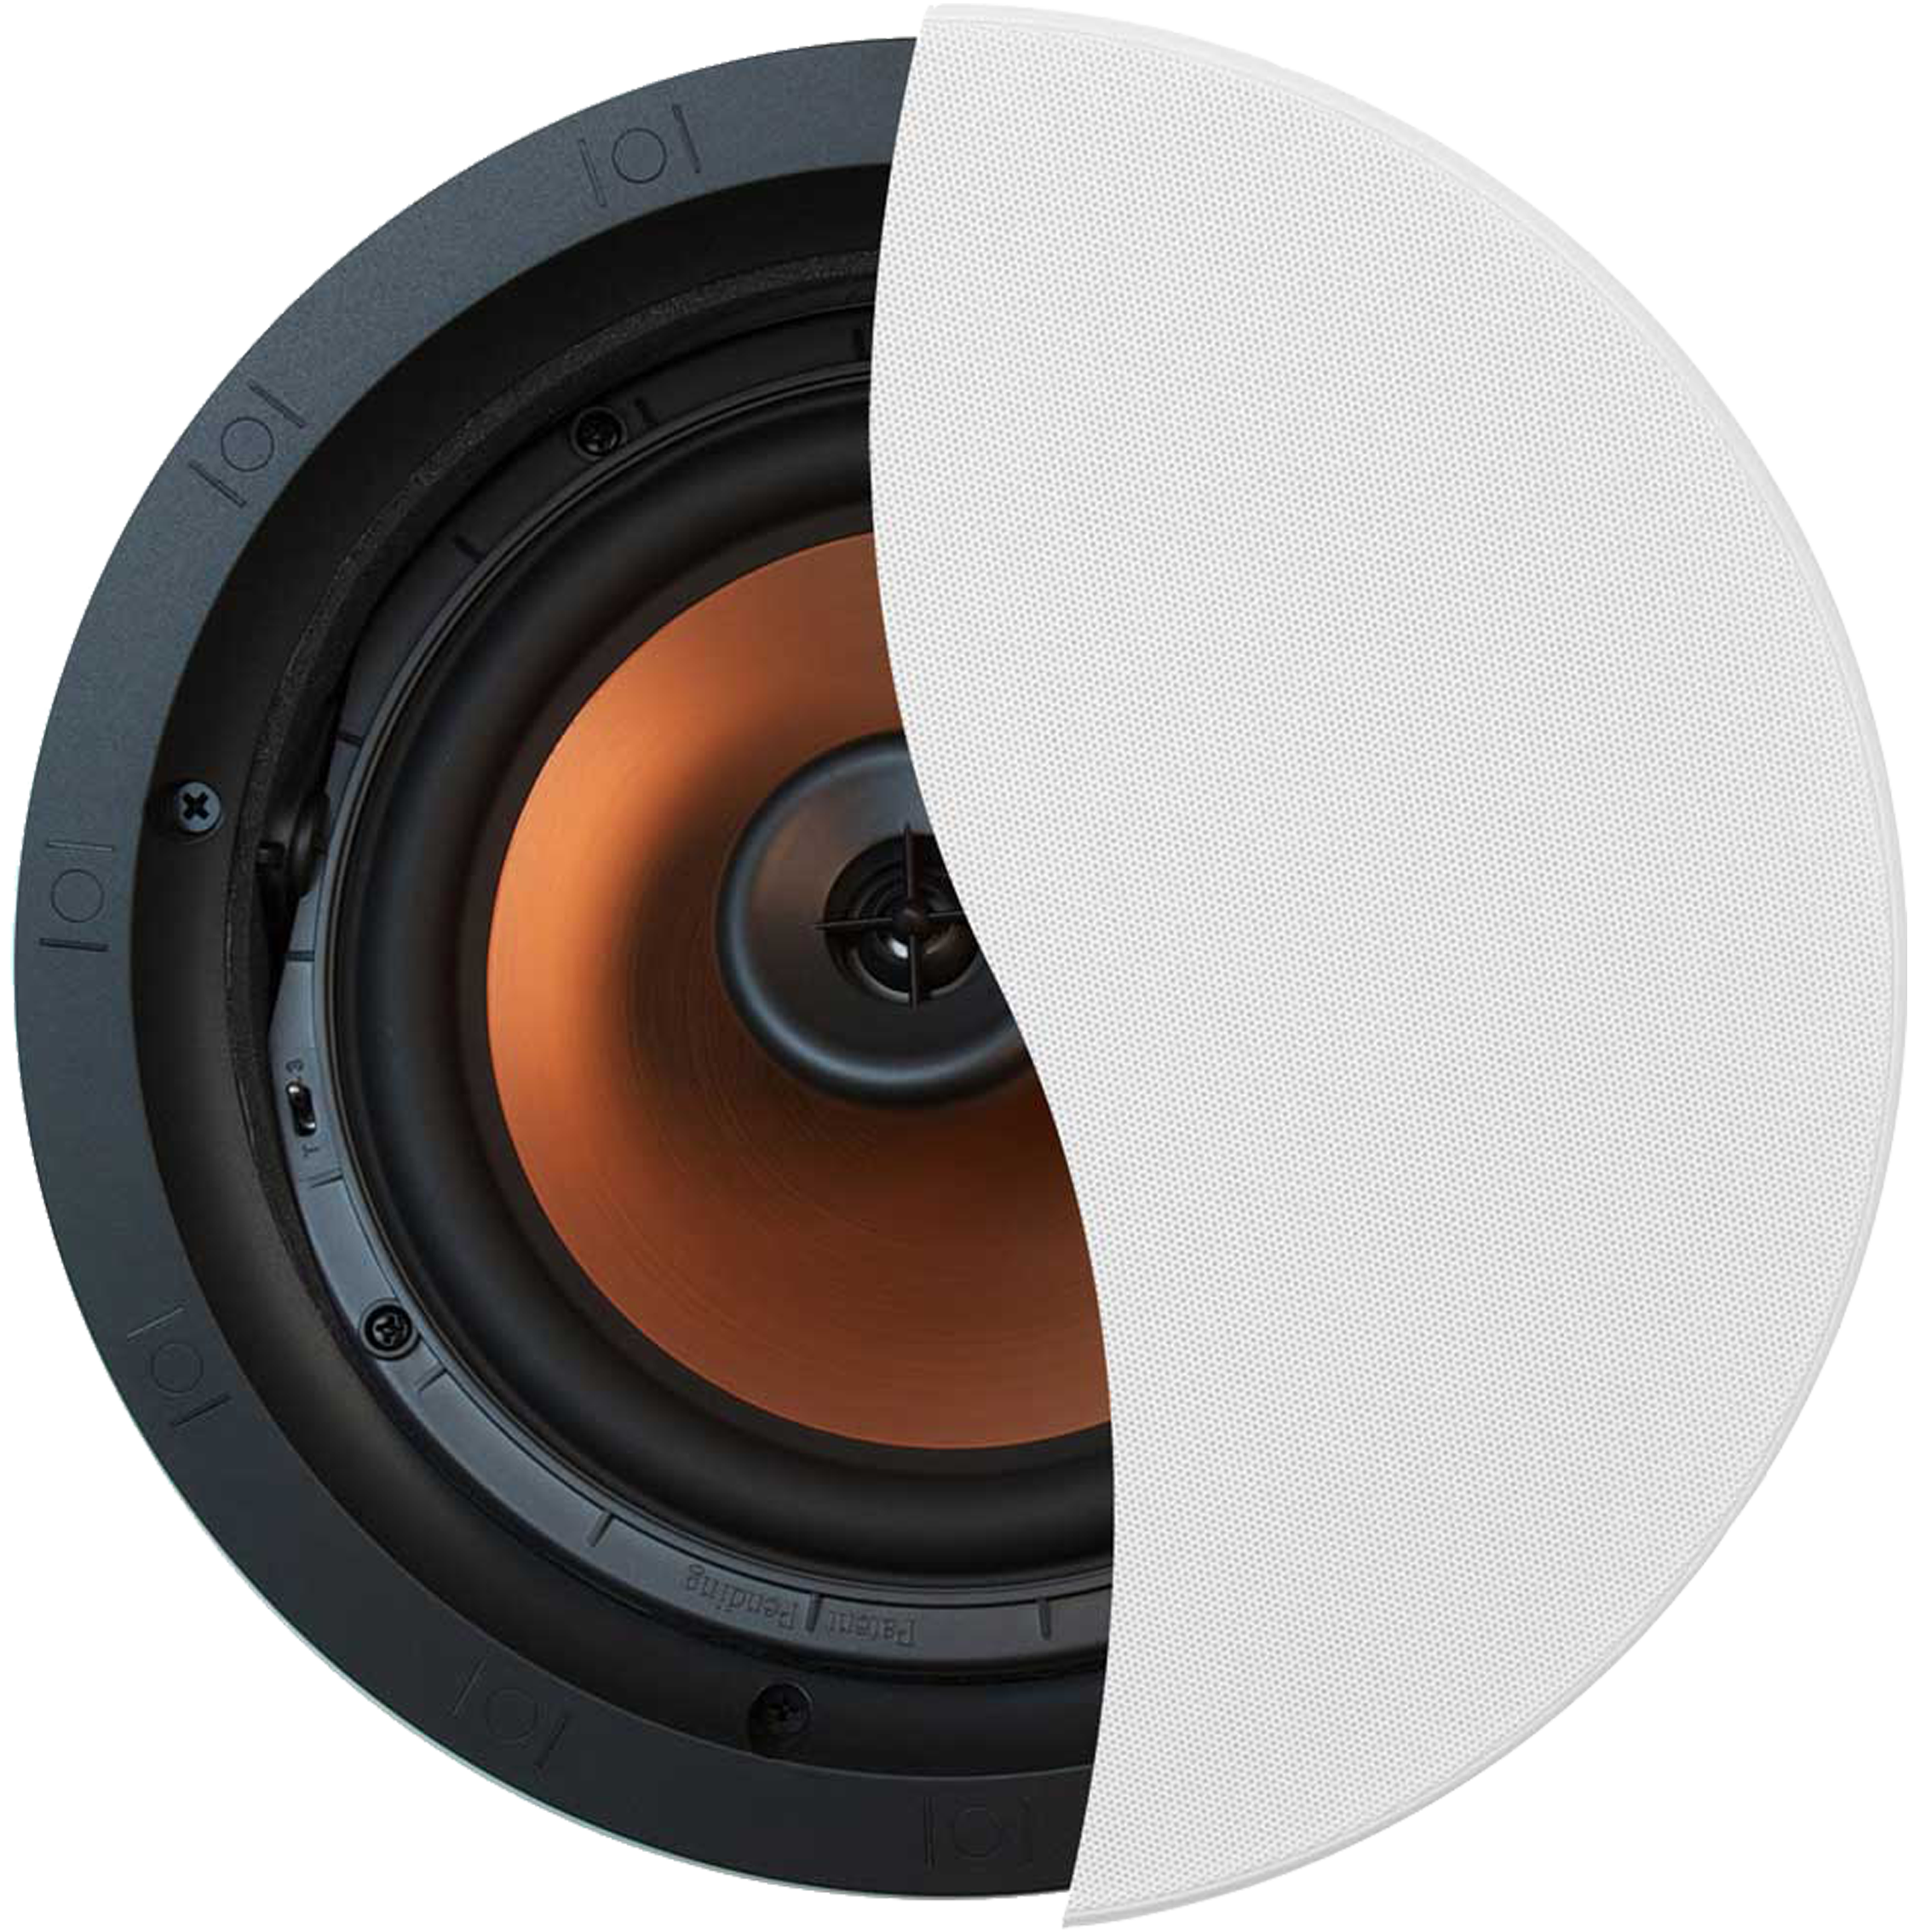 products photo ceilings front electronics pc in ceiling speaker toa